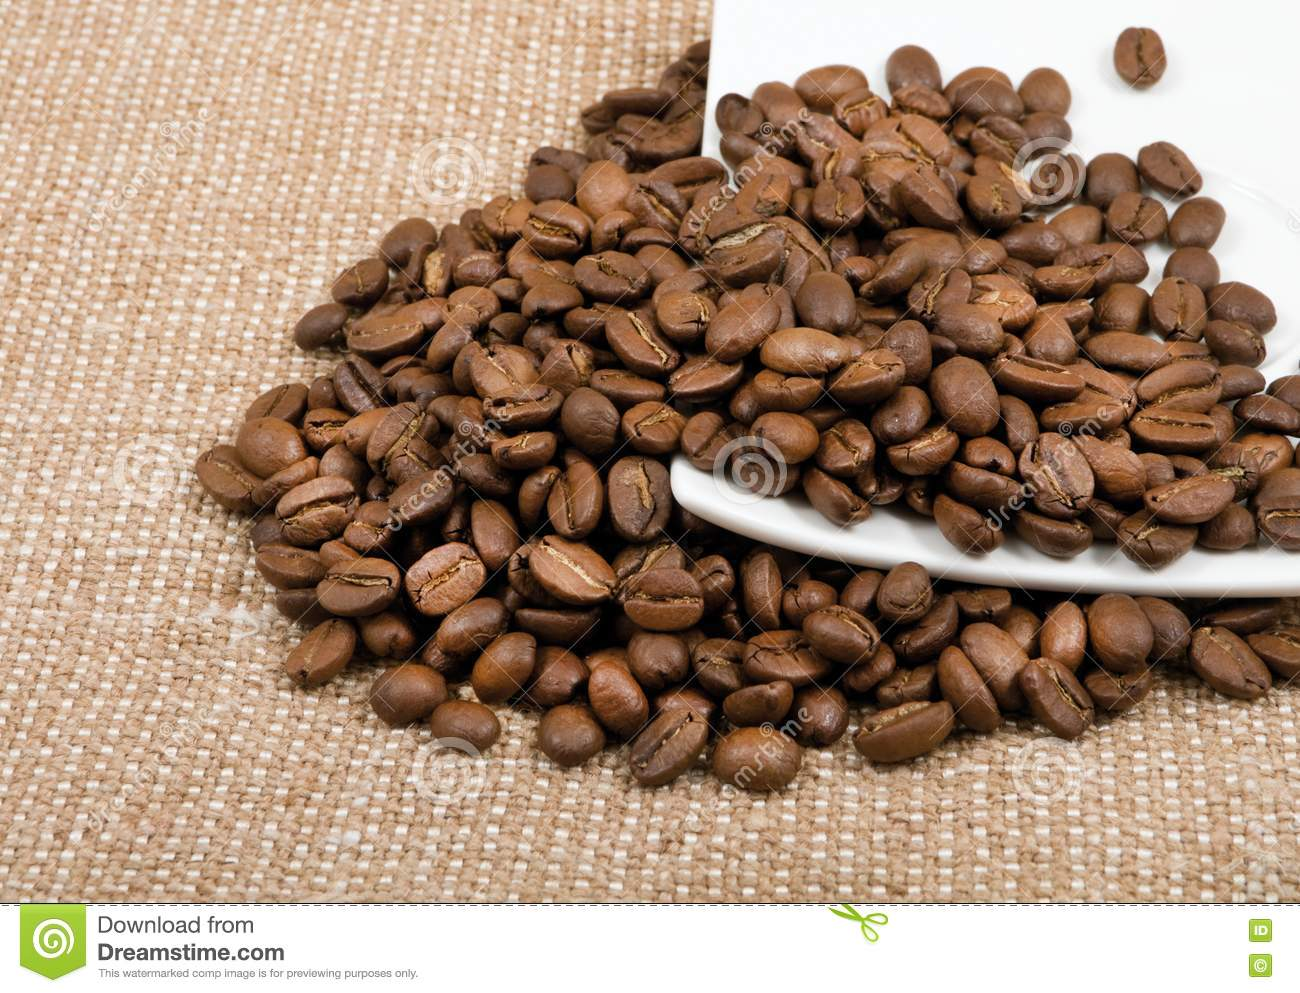 grains of coffee lie on a saucer royalty free stock photo image 23034525. Black Bedroom Furniture Sets. Home Design Ideas